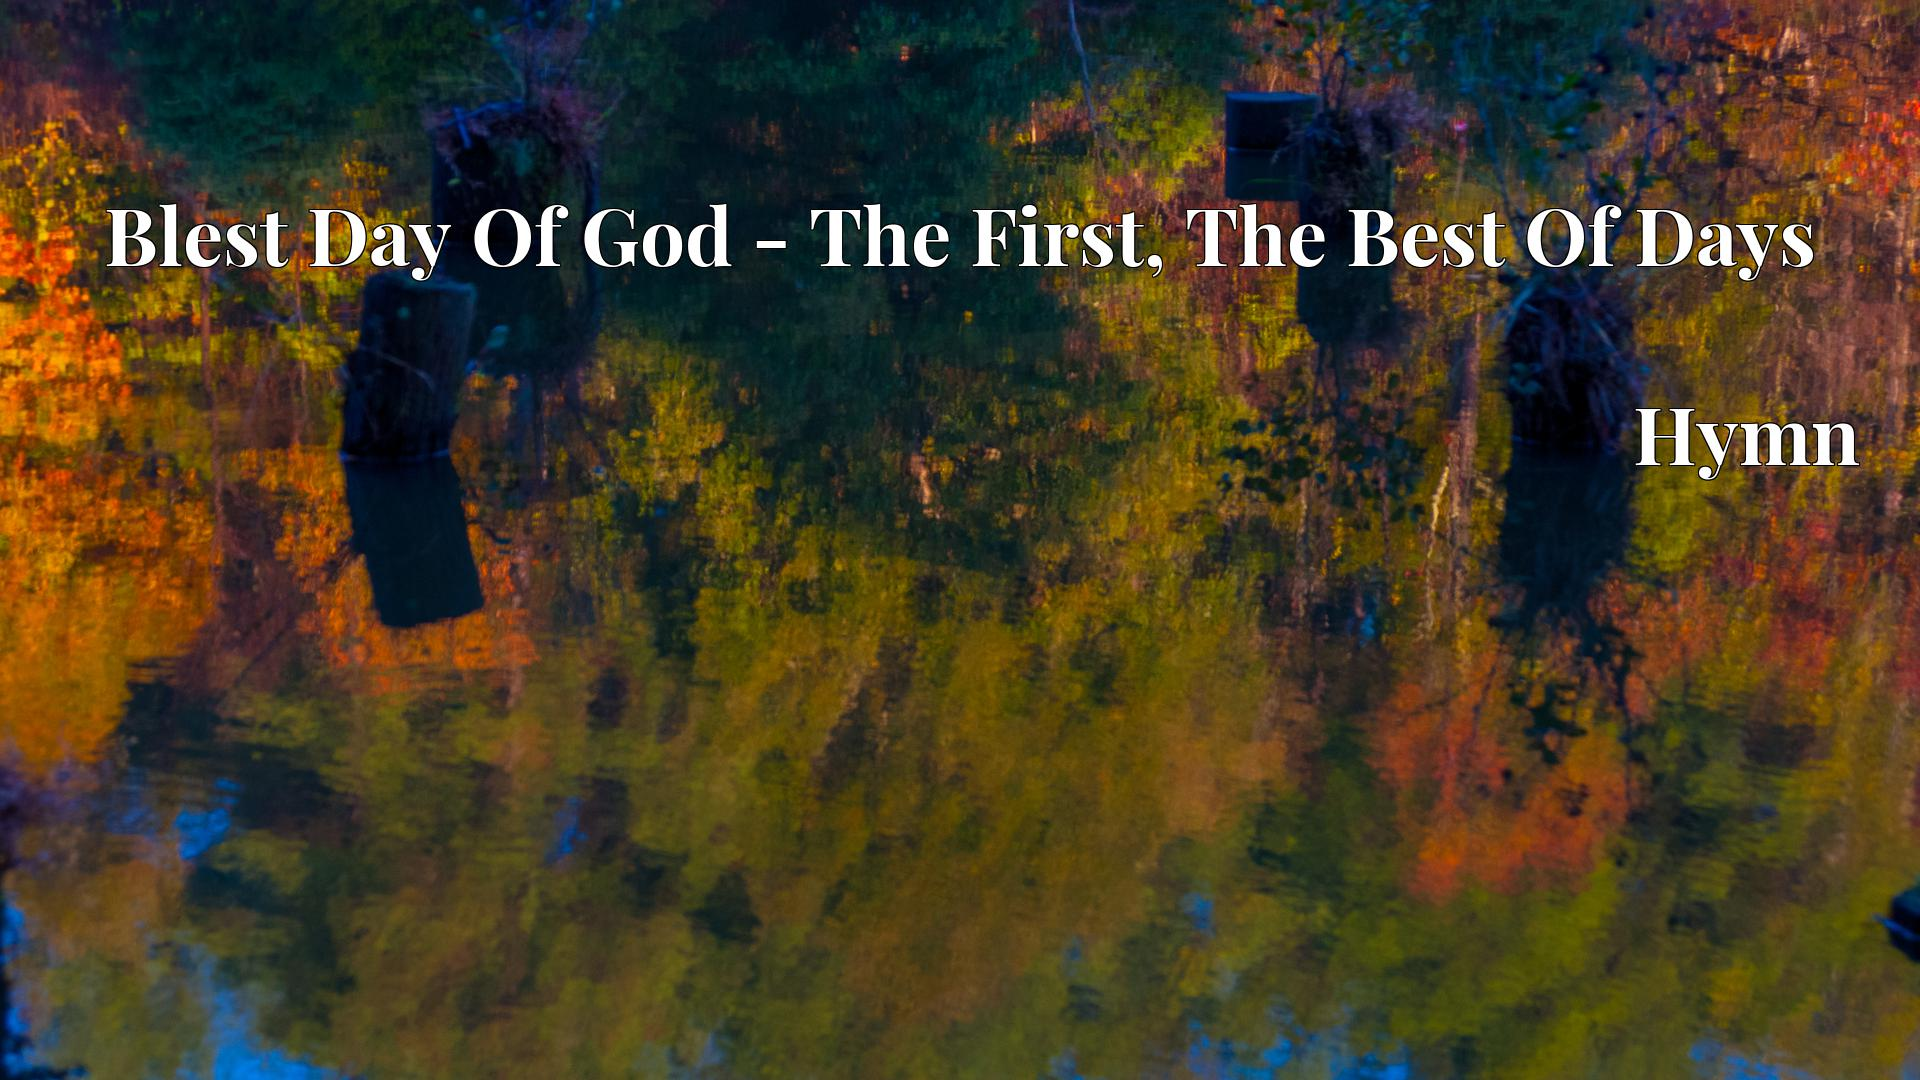 Blest Day Of God - The First, The Best Of Days Hymn